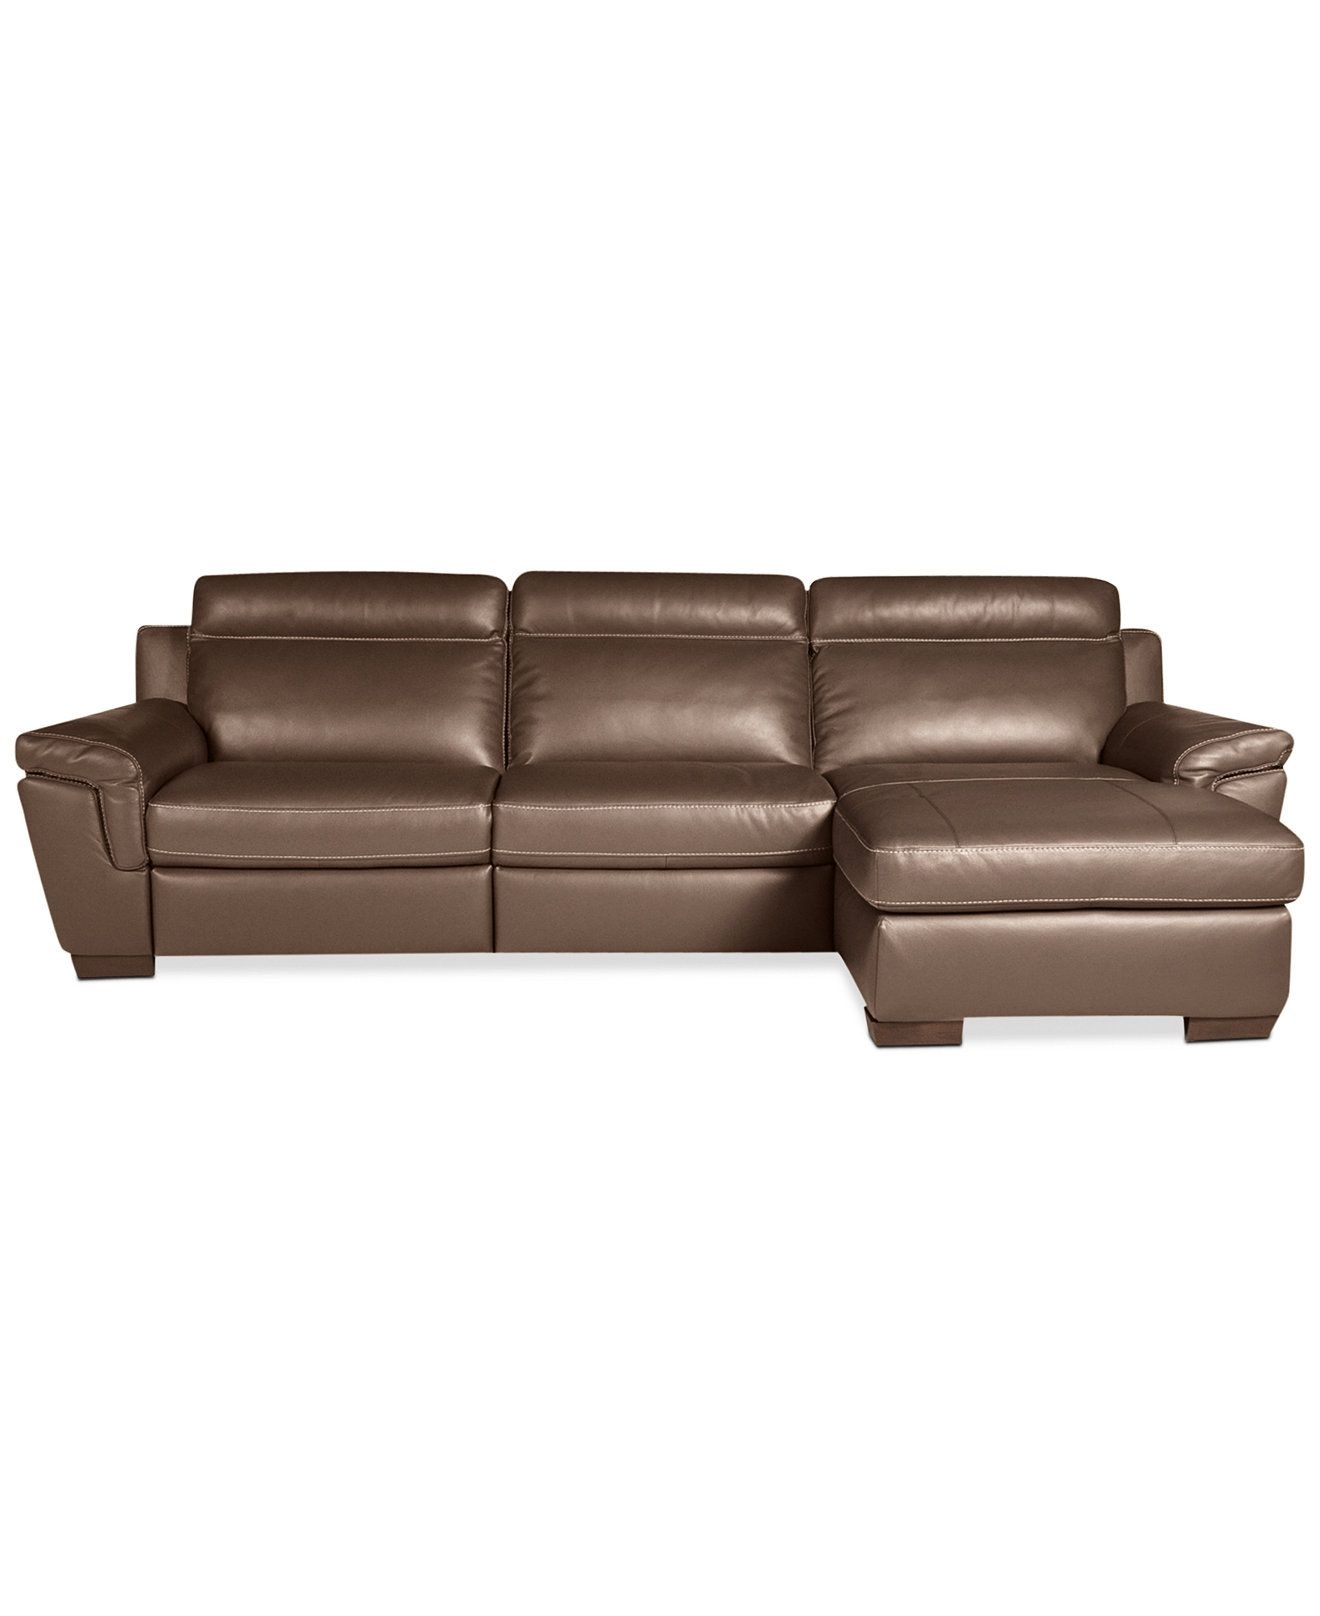 Julius 3 Piece Leather Power Motion Chaise Sectional Sofa (Power In Declan 3 Piece Power Reclining Sectionals With Left Facing Console Loveseat (Image 9 of 25)